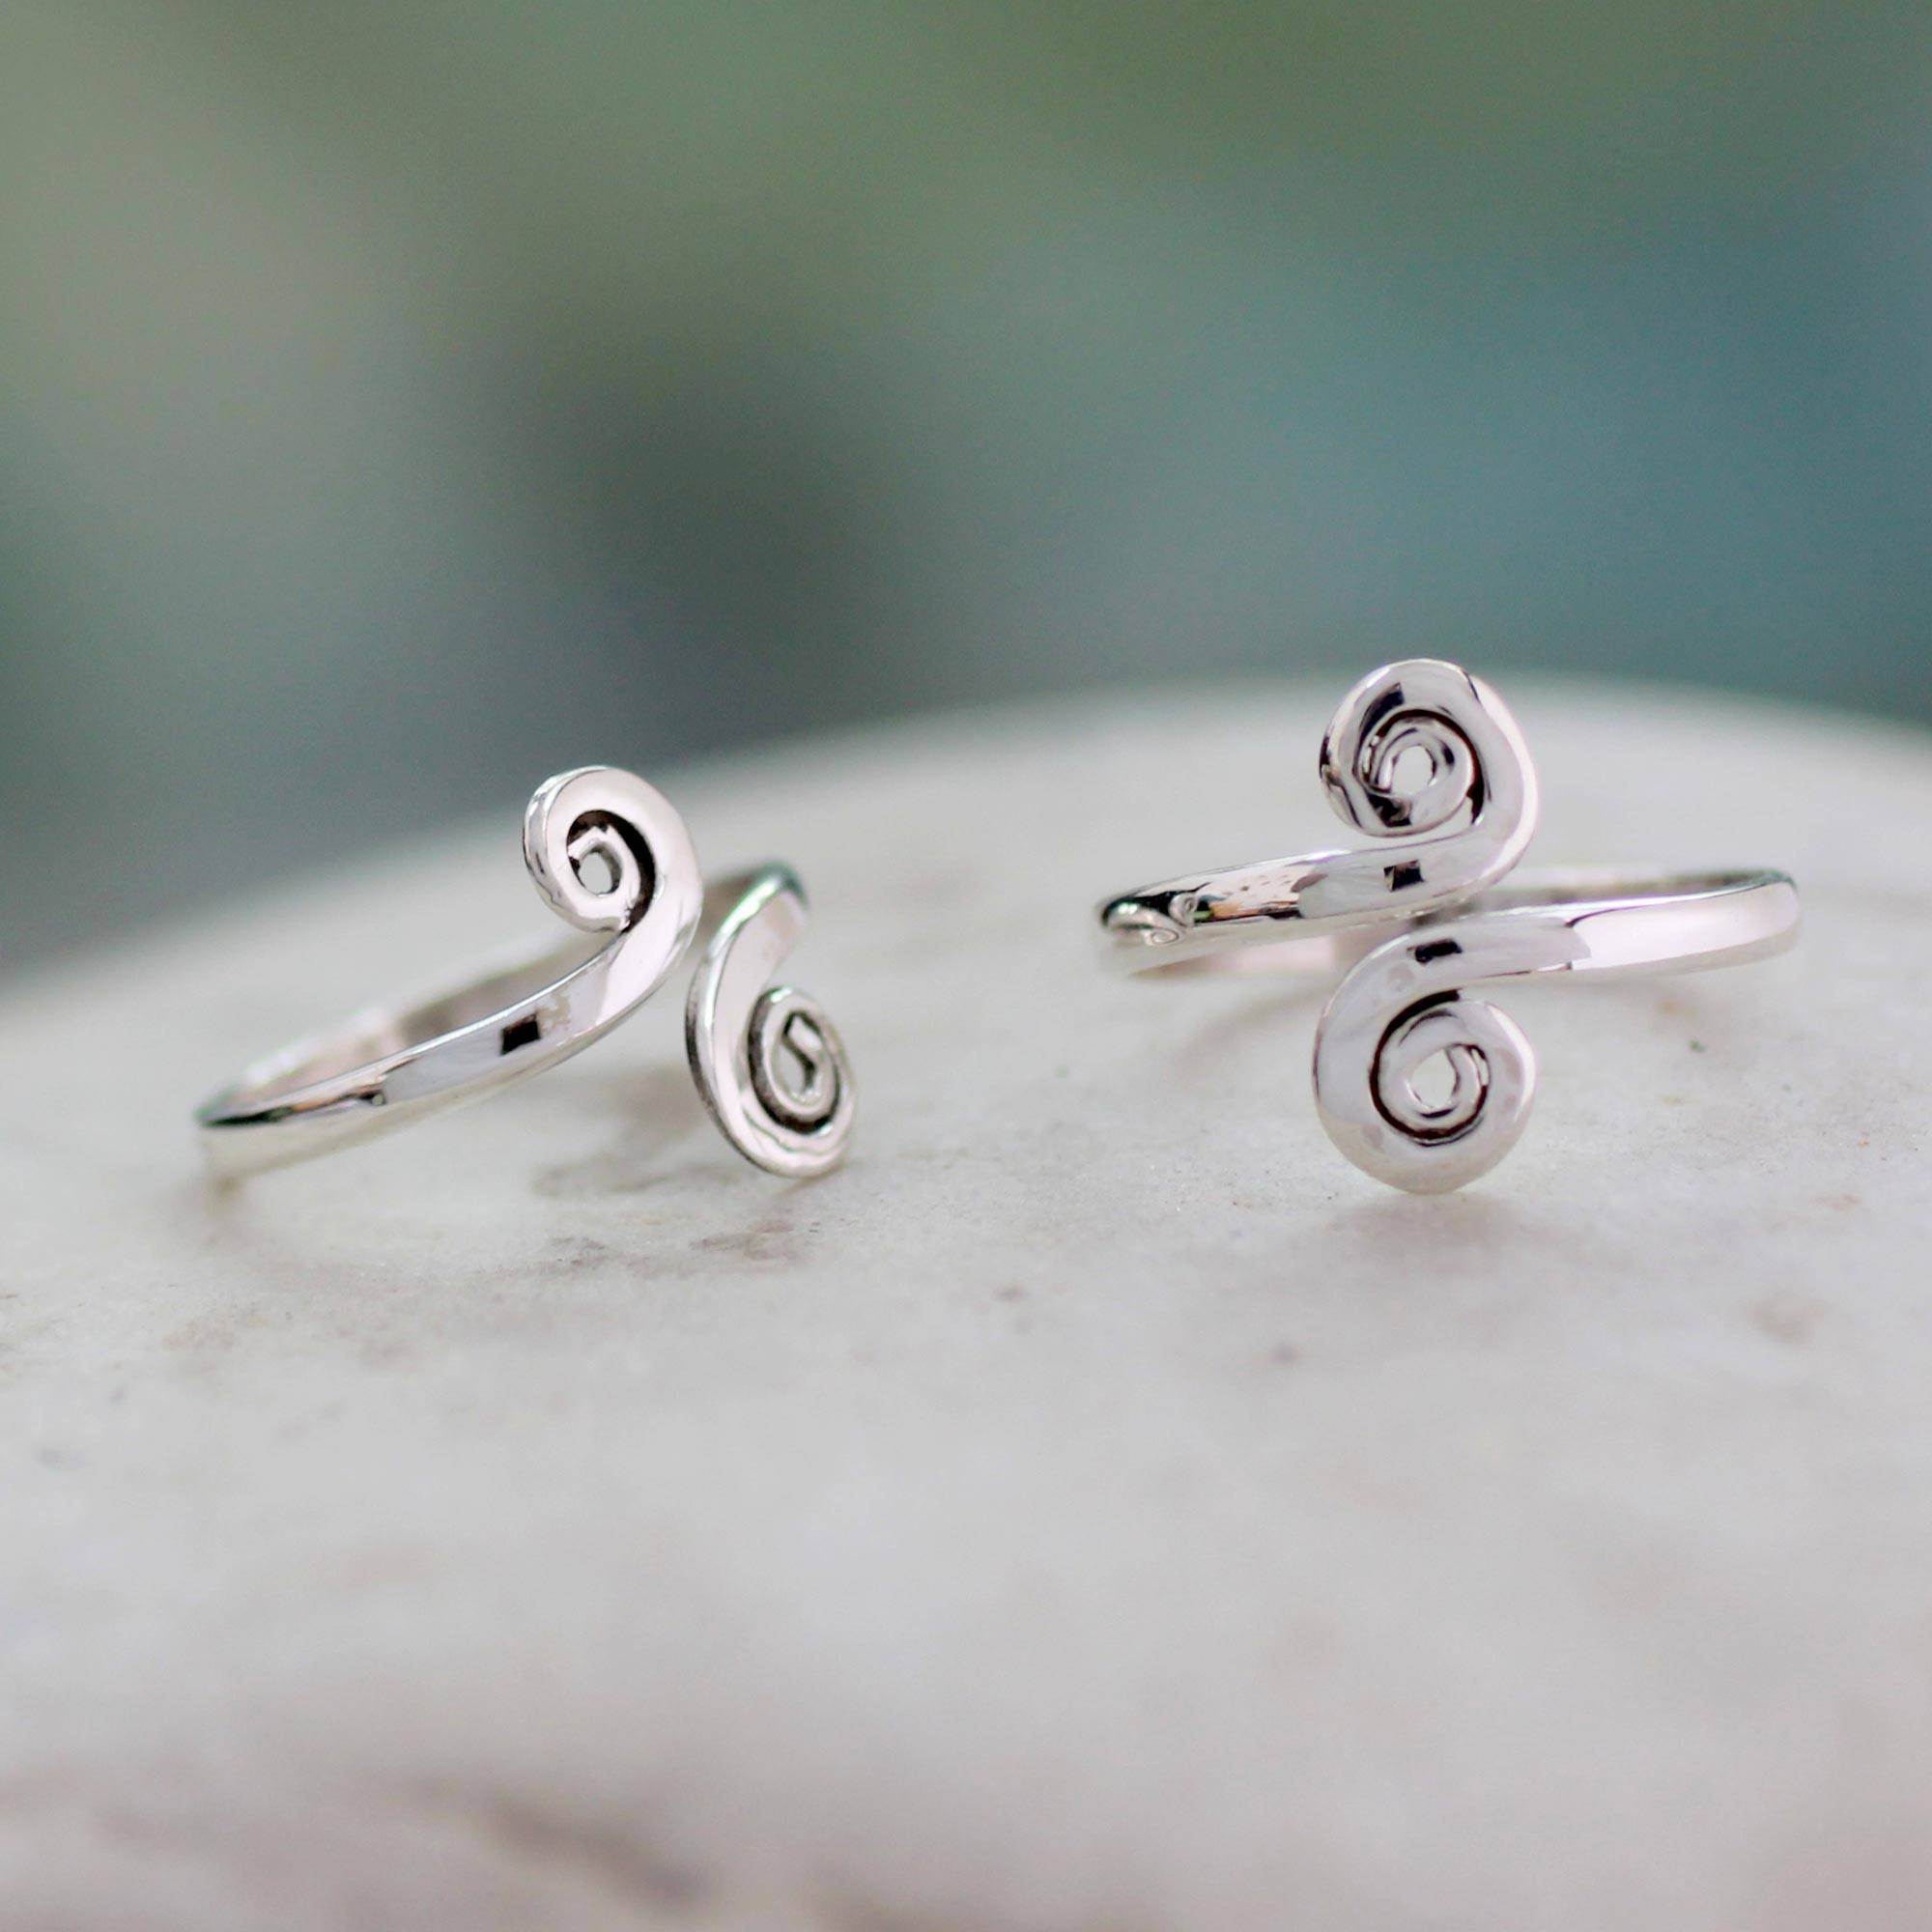 unicef uk market handcrafted sterling silver toe rings